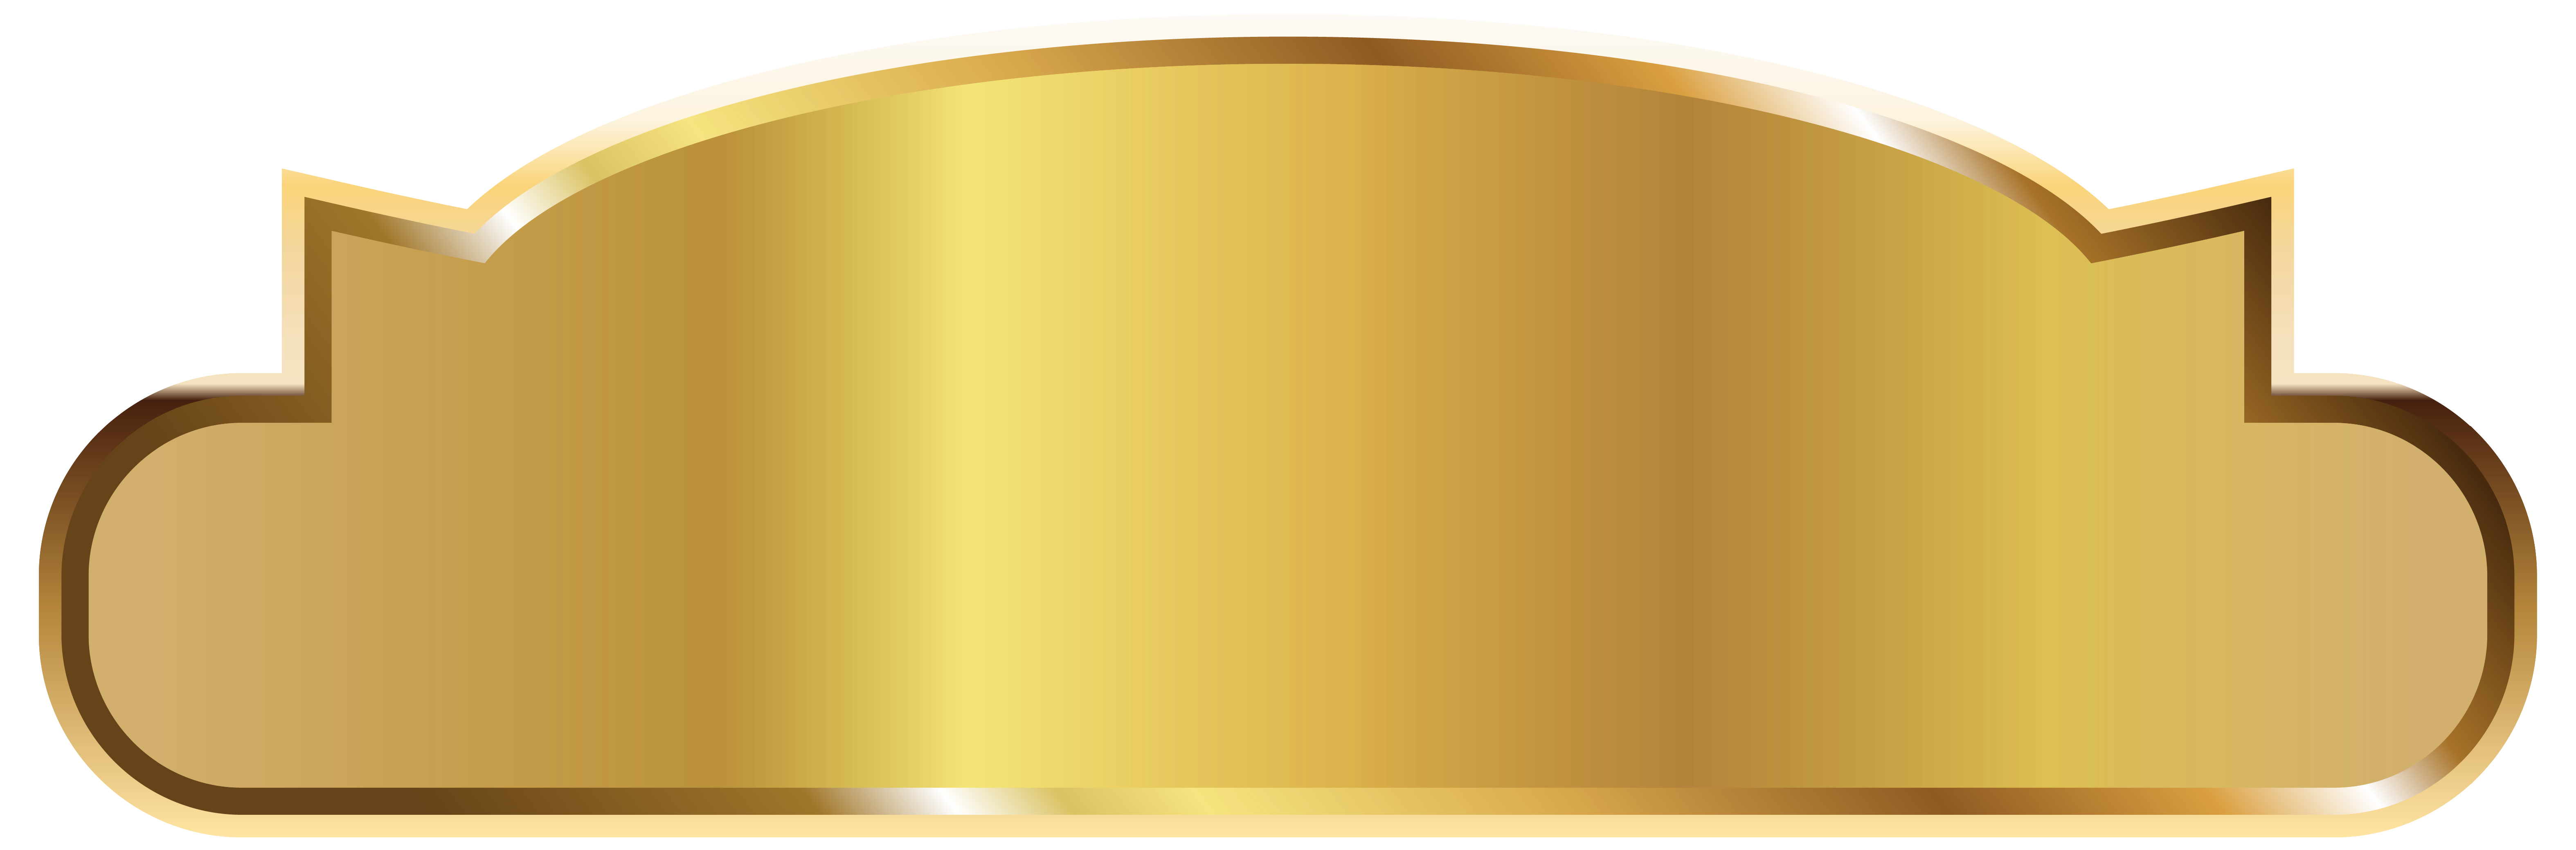 Gold PNG - 23973